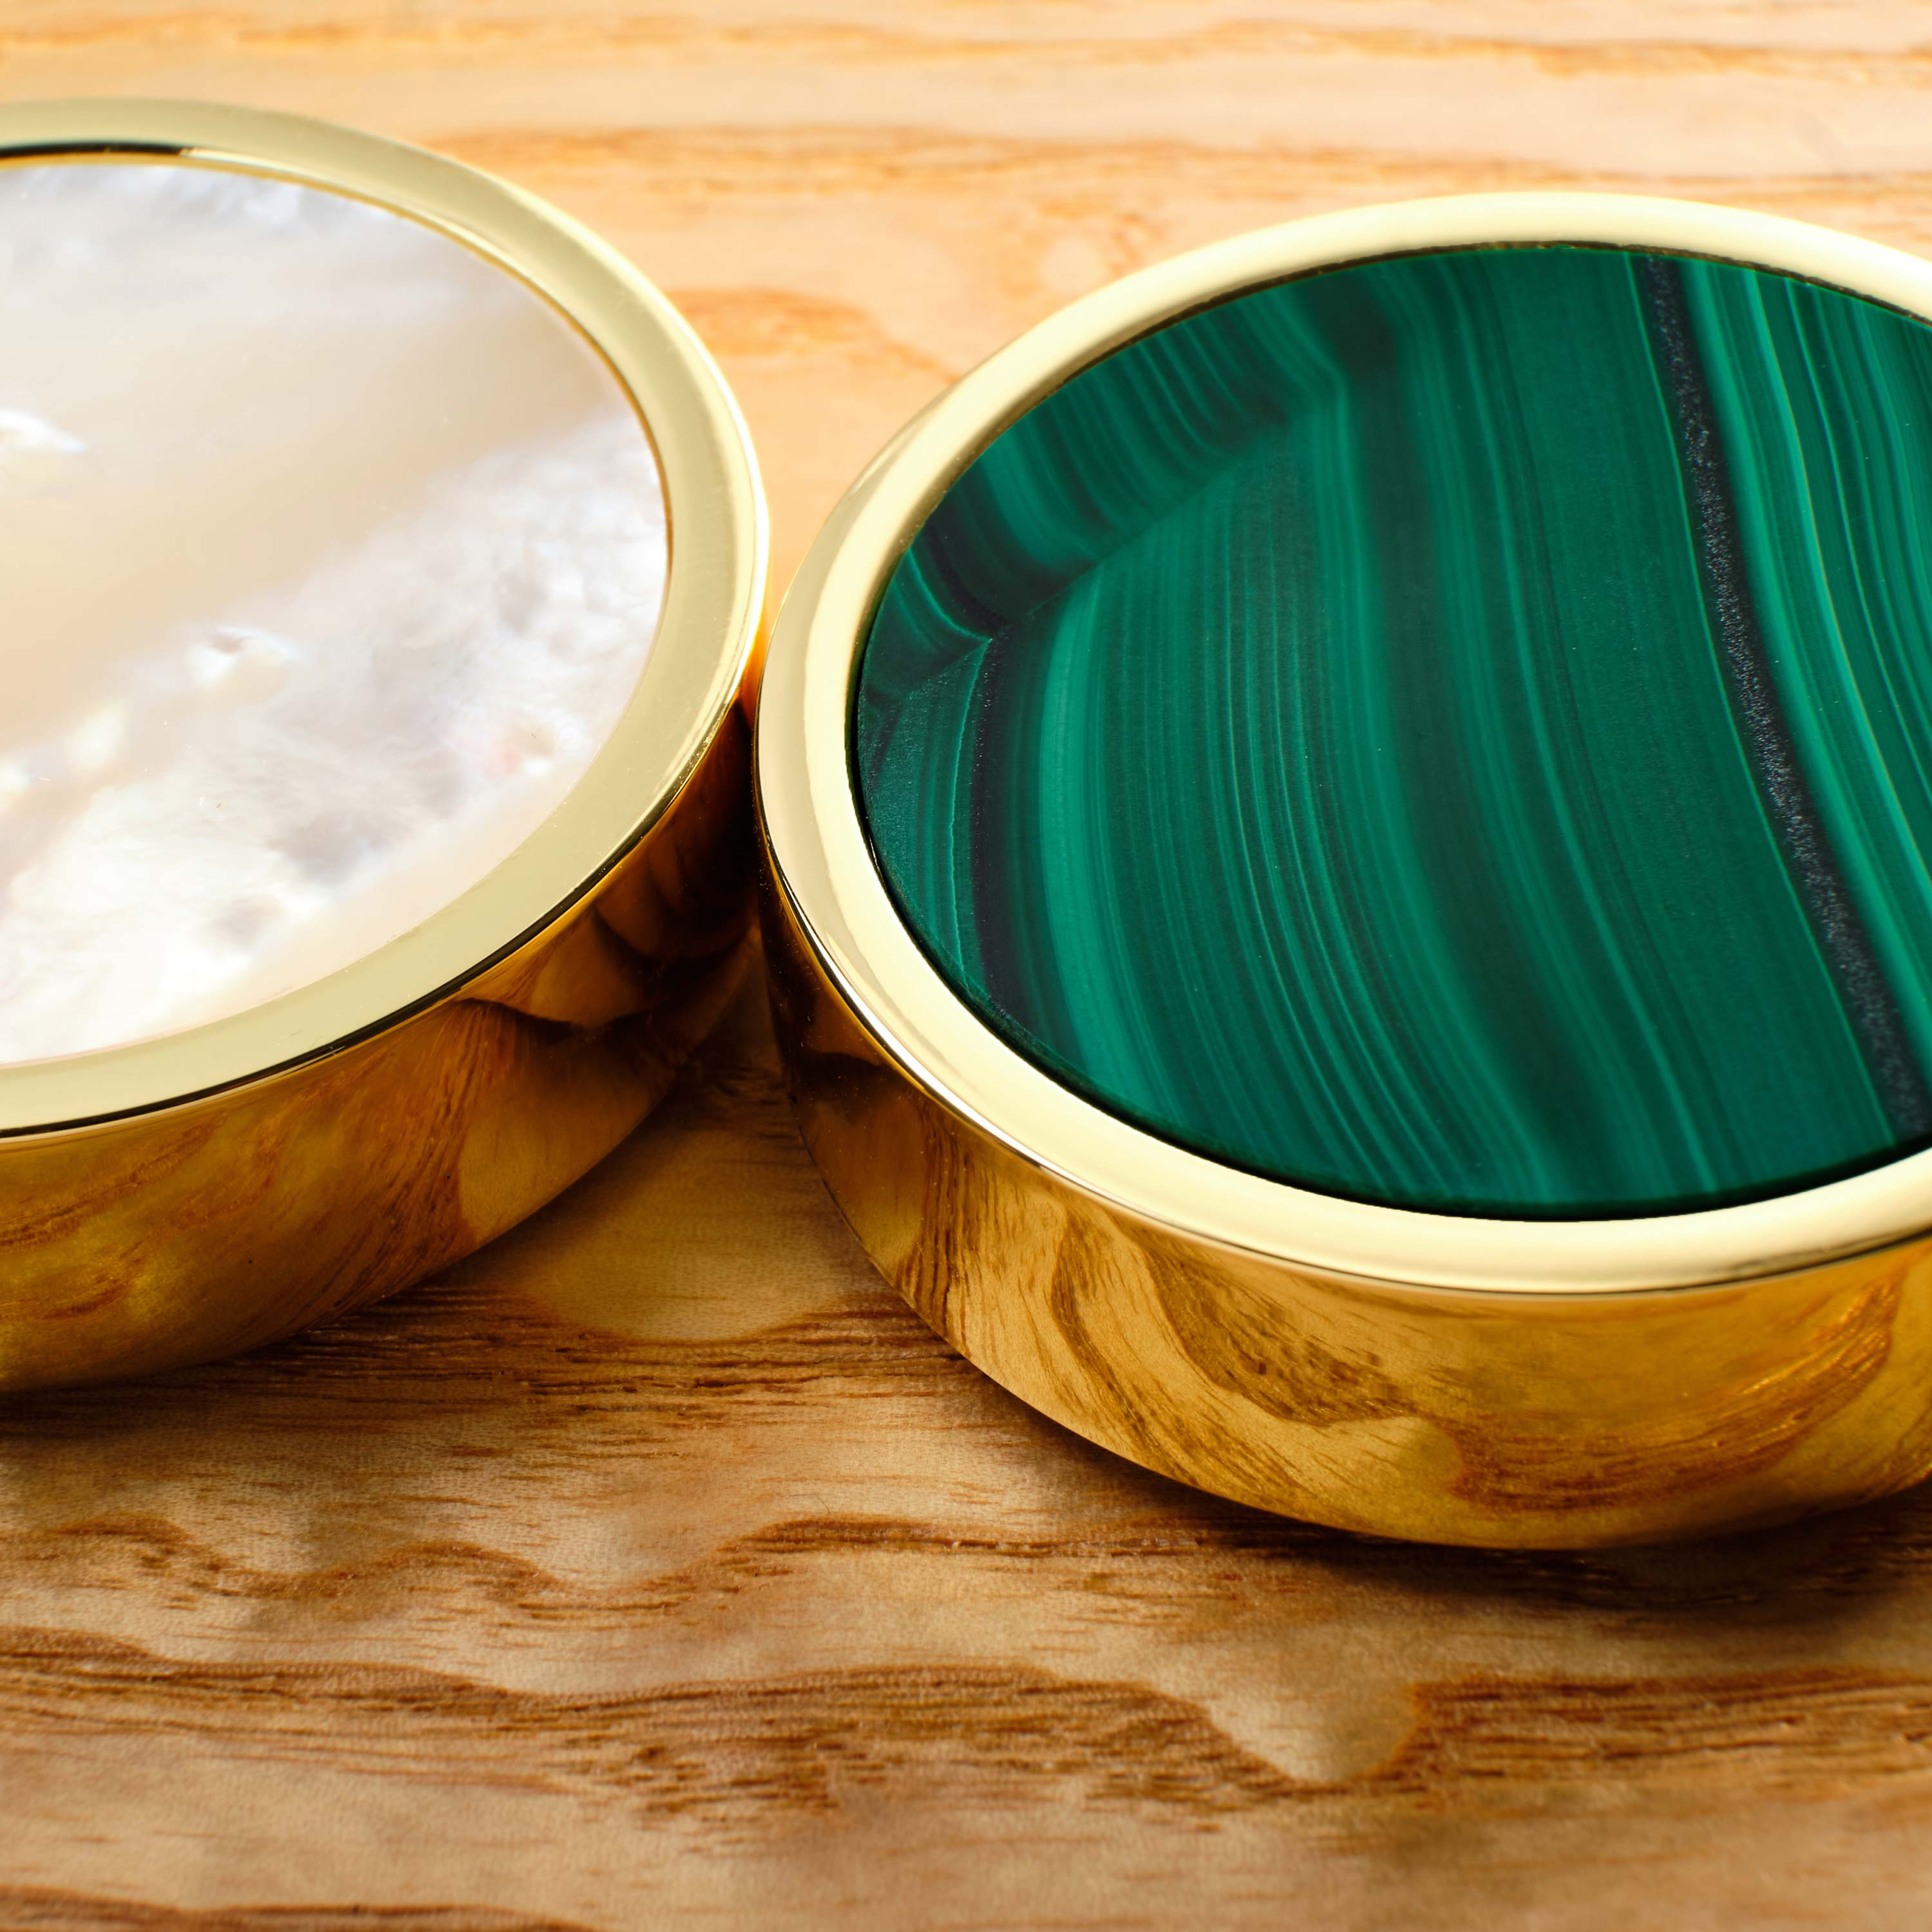 malachite and mother of pearl playing pieces